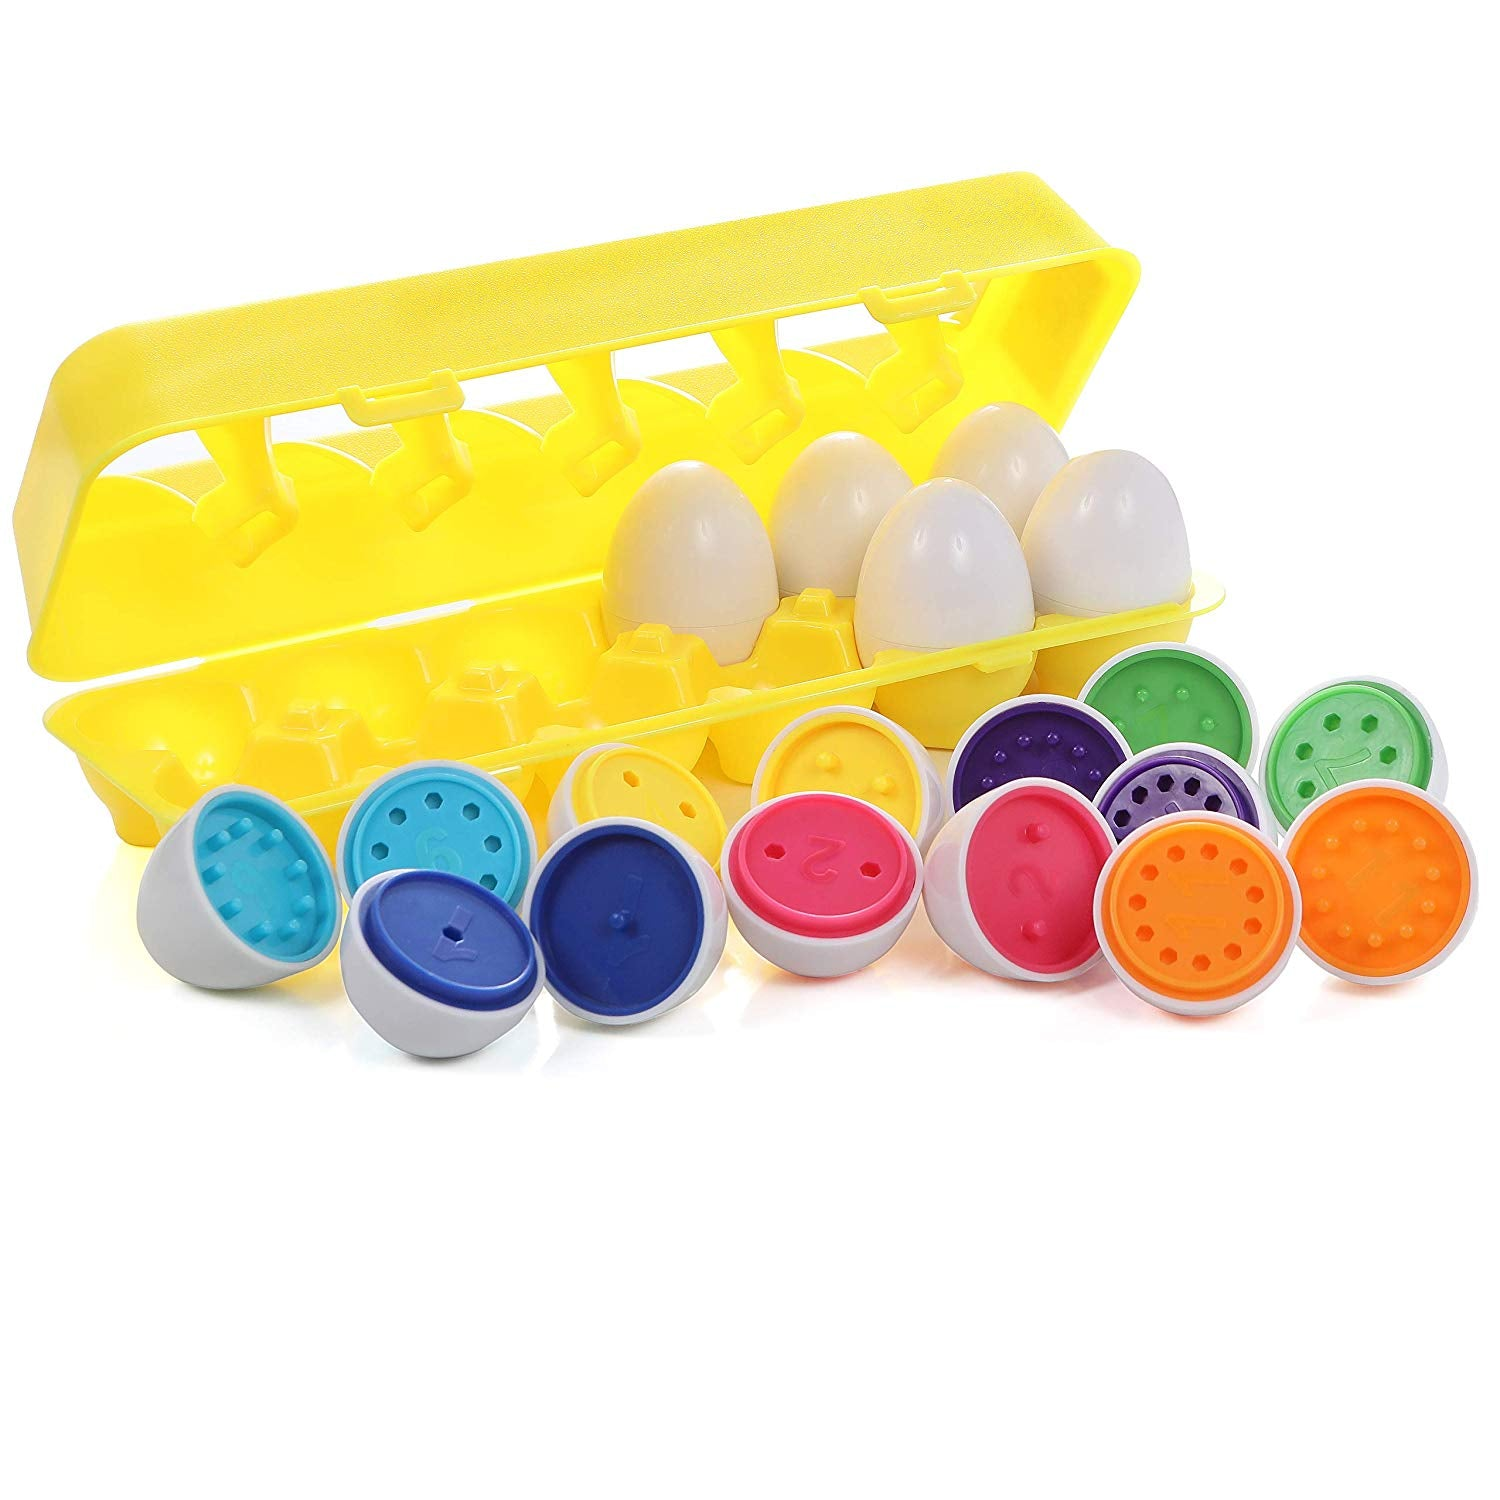 Toddler Match an Egg Toy, Set of 12 Color and Number Eggs